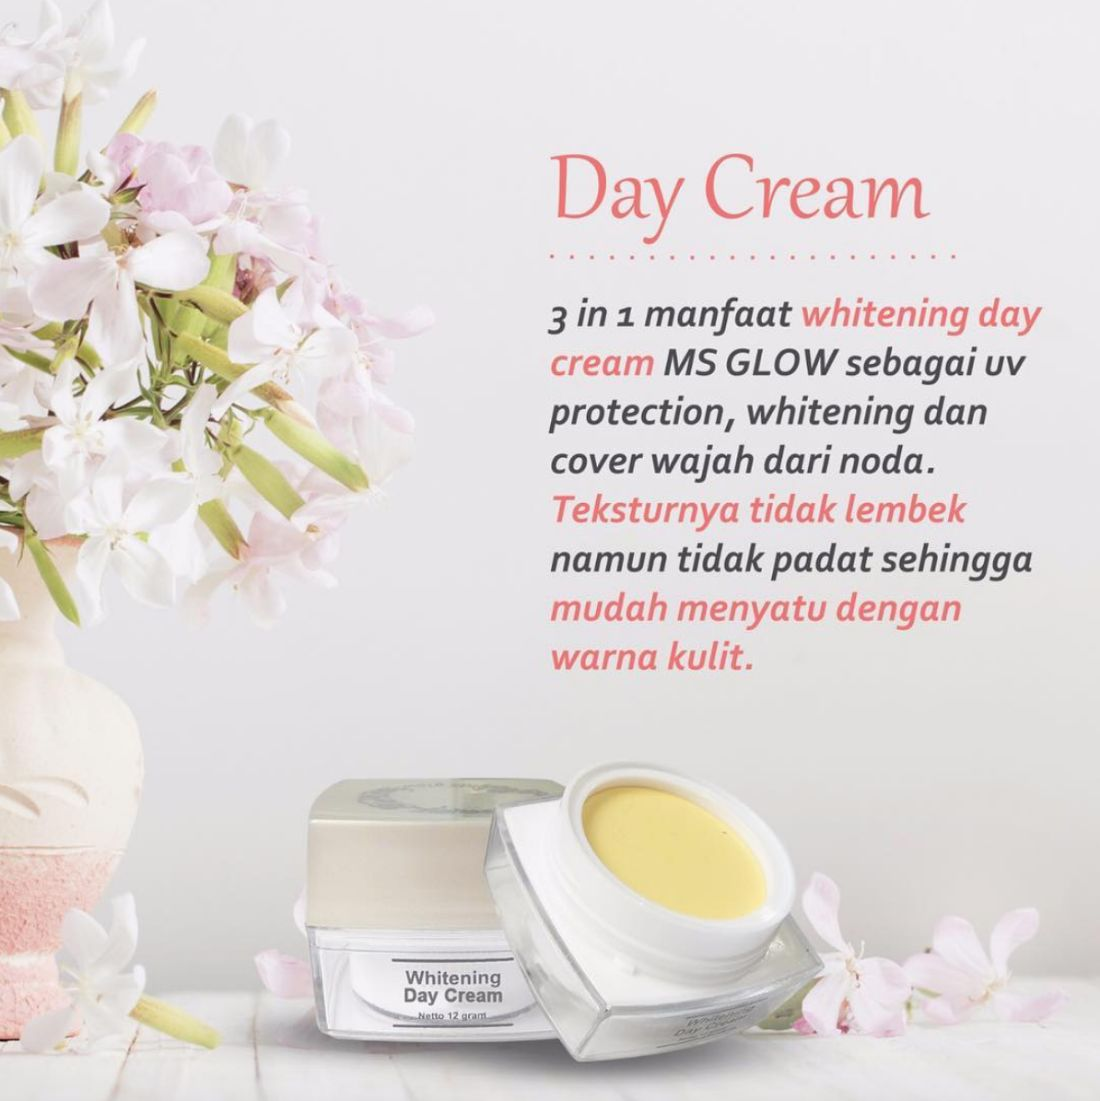 Kandungan Day Cream MS Glow